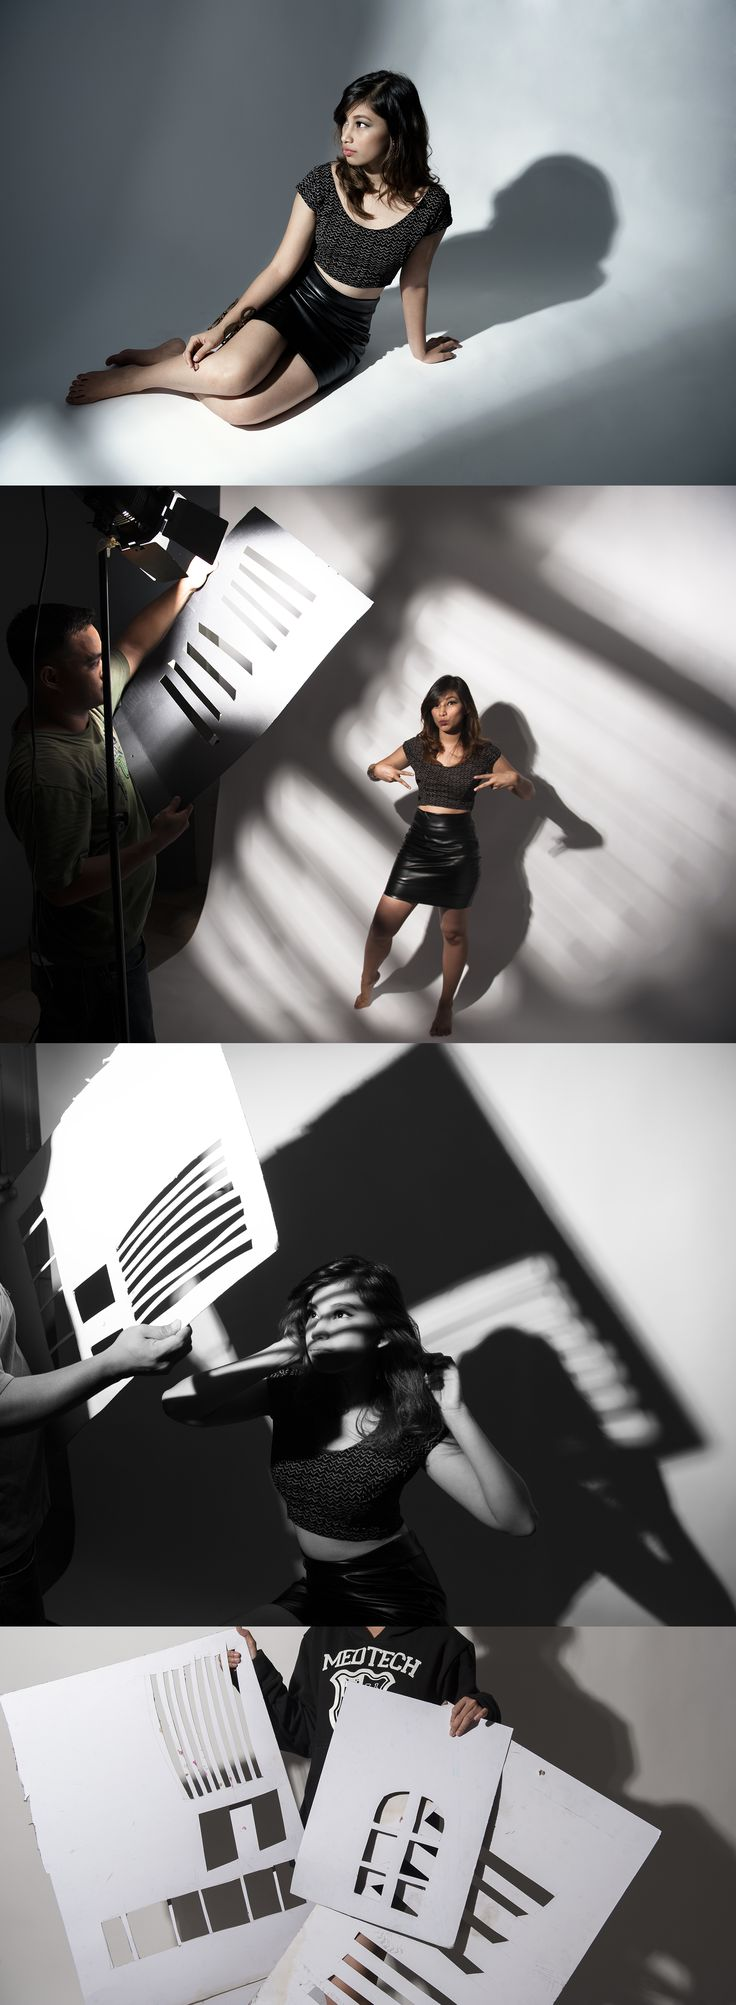 the use of gobos in your images, love the shadows they cast on the model and background.